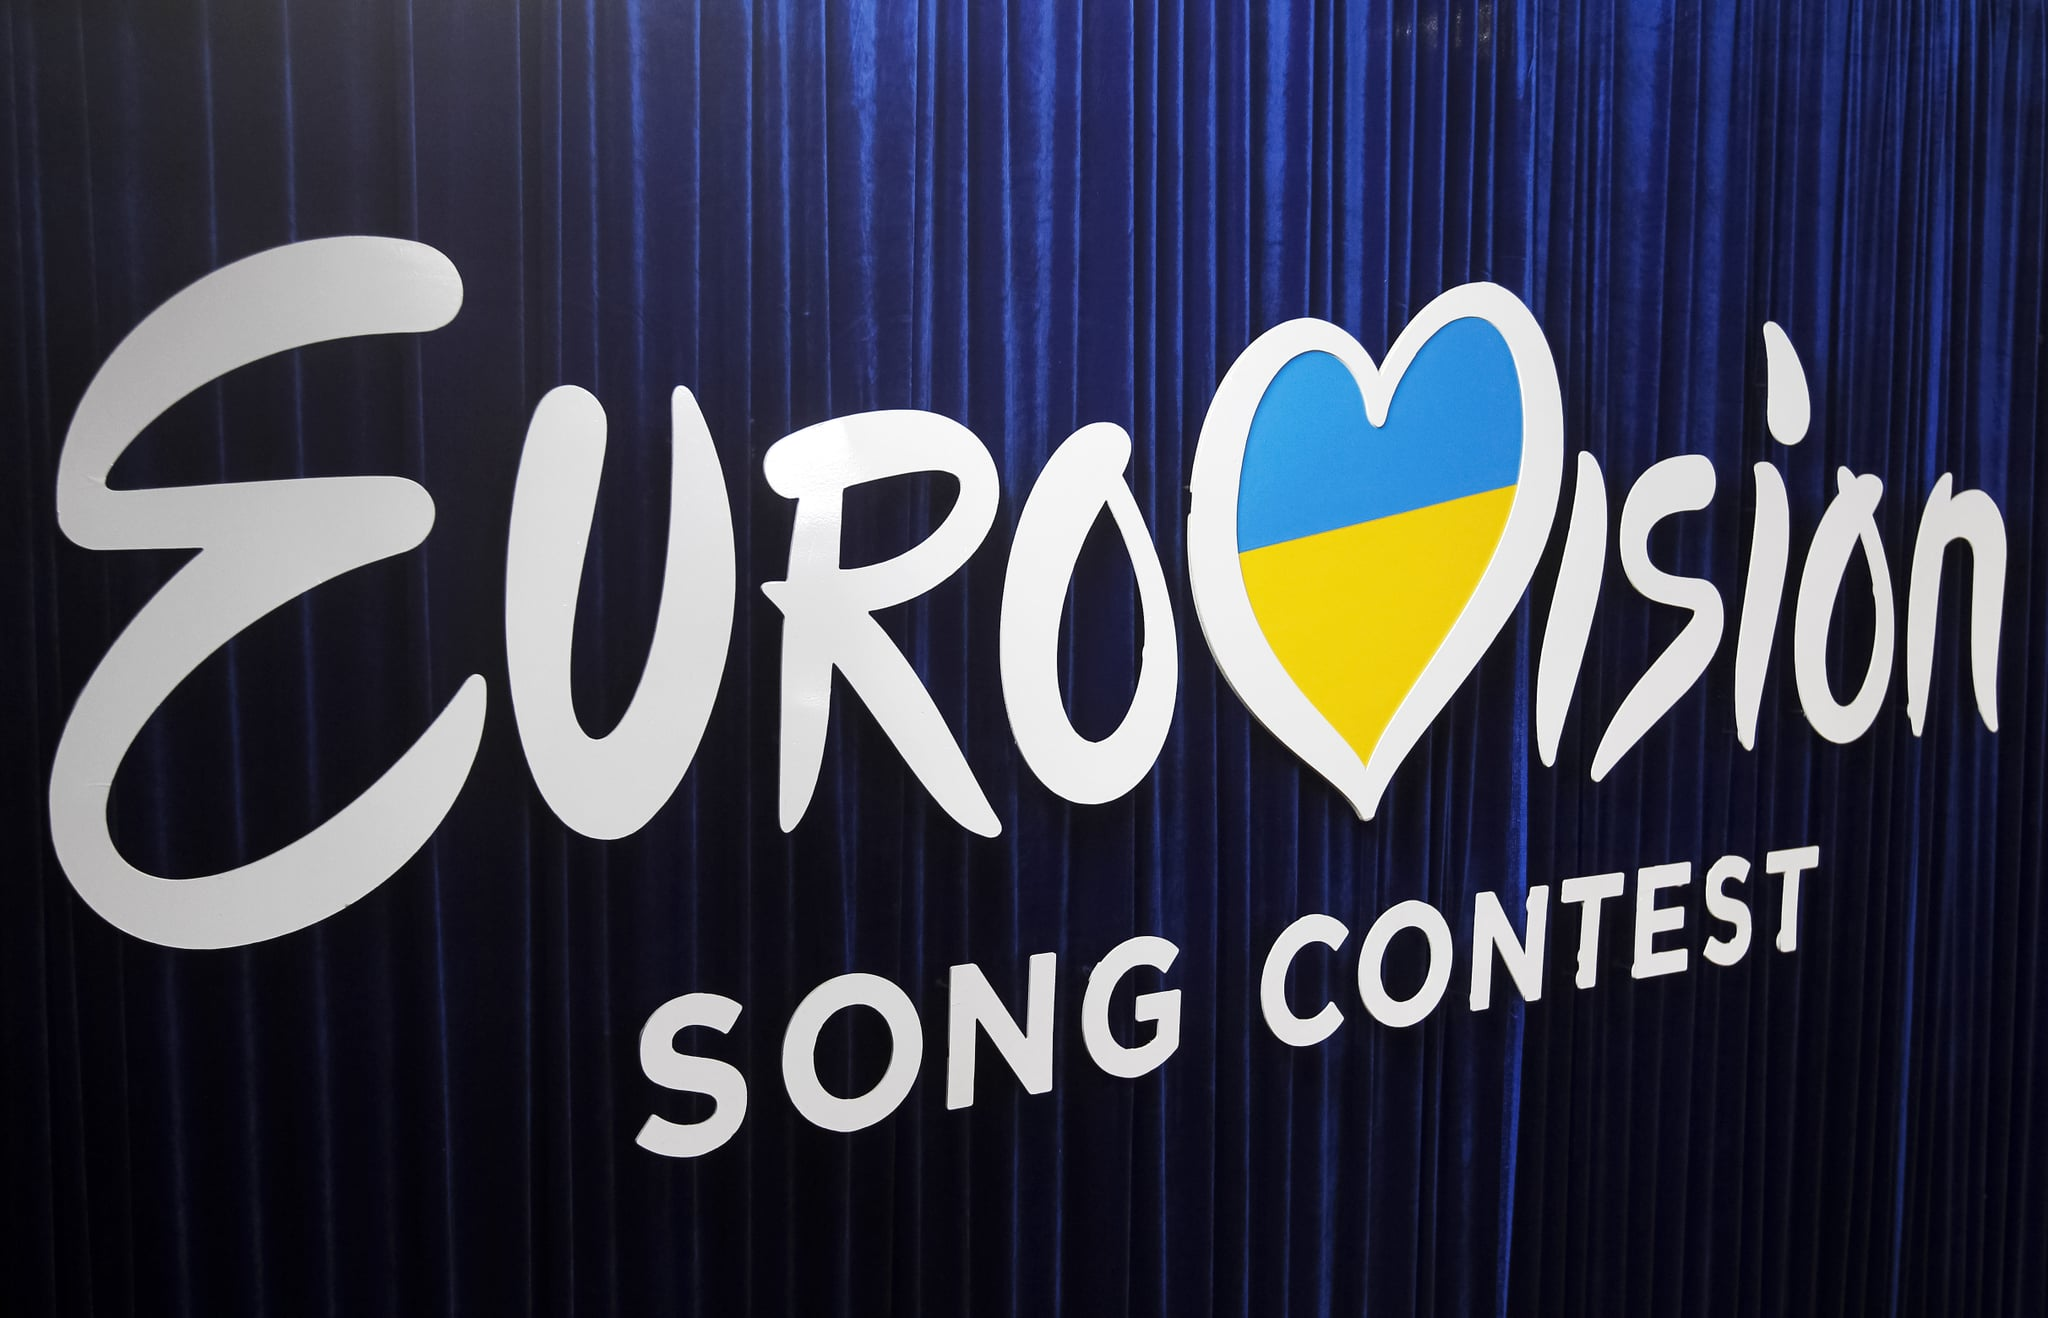 Eurovision Song Contest logo is seen during the 2020 Eurovision Song Contest (ESC) national selection show, broadcasted by STB and UA:Pershyi TV channels, in Kyiv, Ukraine, on 22 February, 2020. Ukrainian band Go_A with song Solovey will represent Ukraine at the Eurovision Song Contest (ESC) that consists of two semi-finals, to be held on 12 and 14 May, and a grand final taking place at the Rotterdam Ahoy in Rotterdam, Netherlands, on 16 May 2020.  (Photo by STR/NurPhoto via Getty Images)